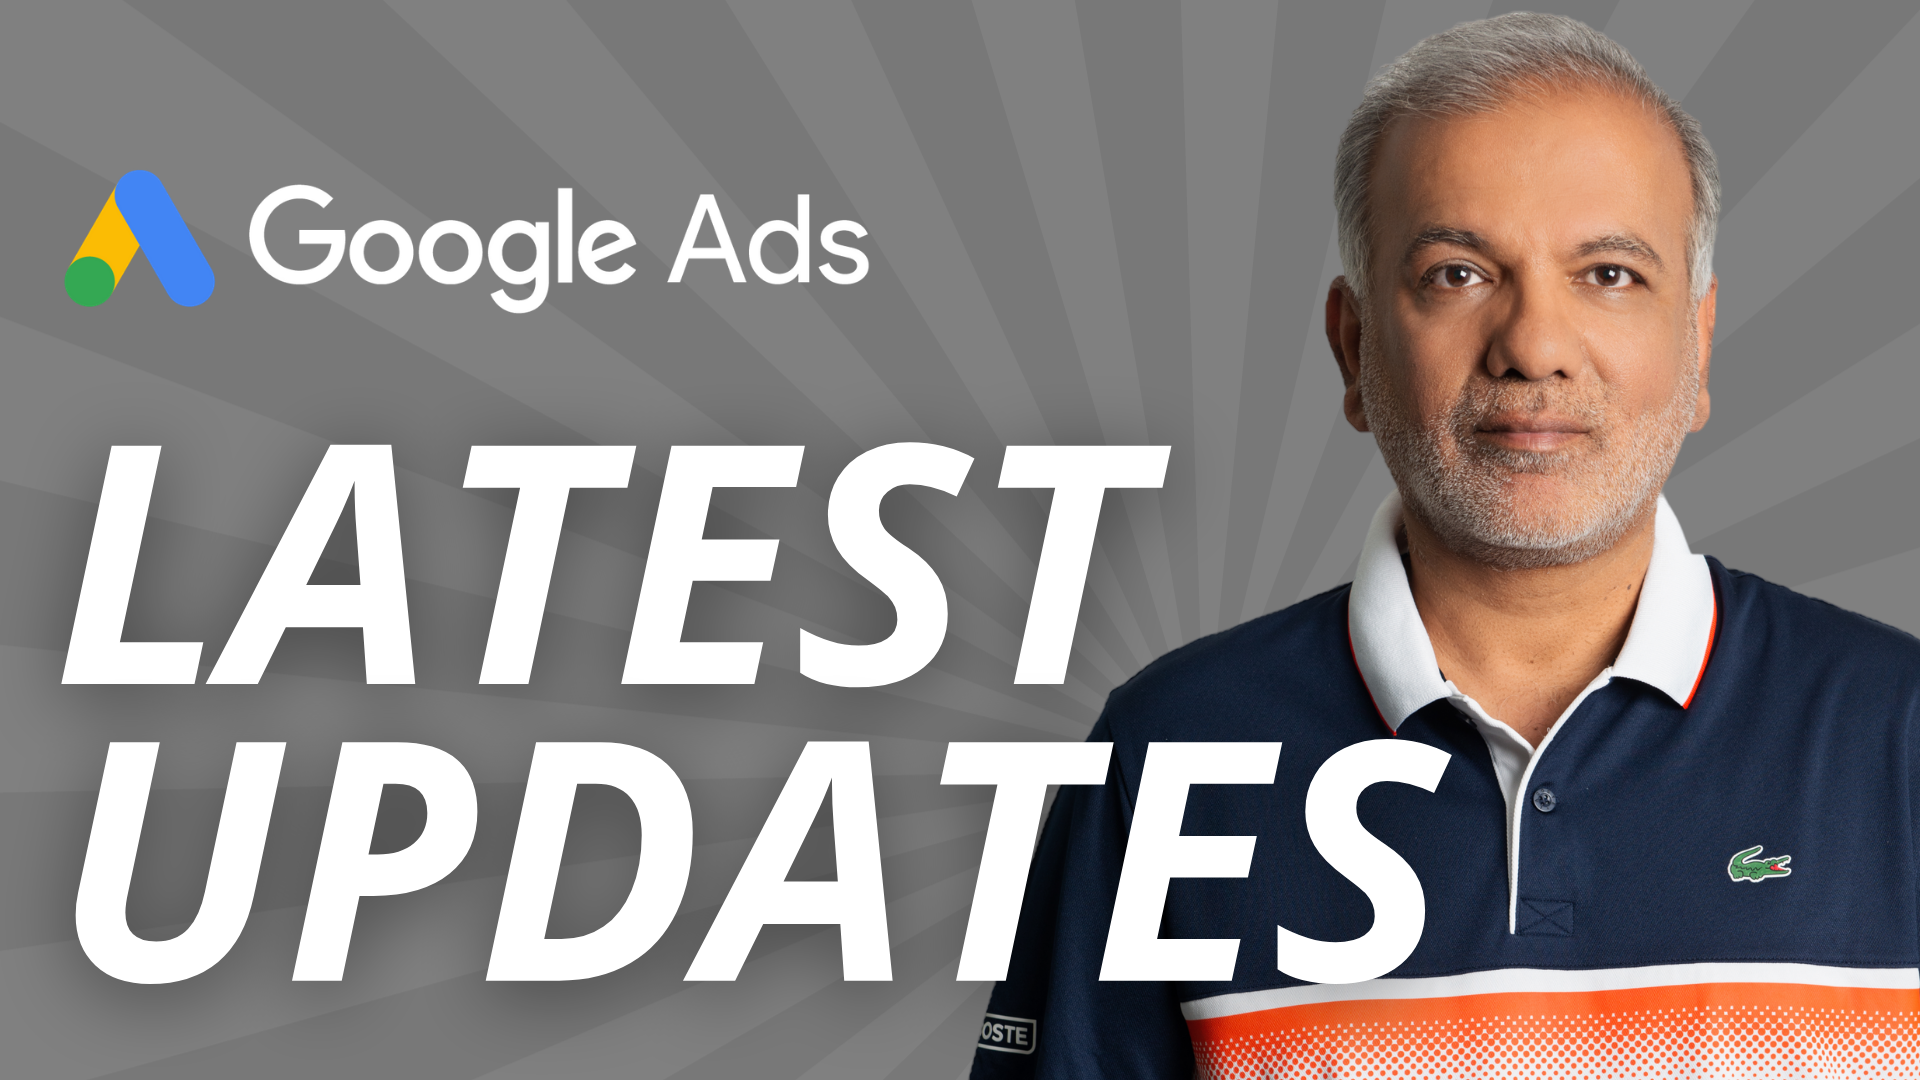 The 5 New Biggest Google Ads Updates of 2021